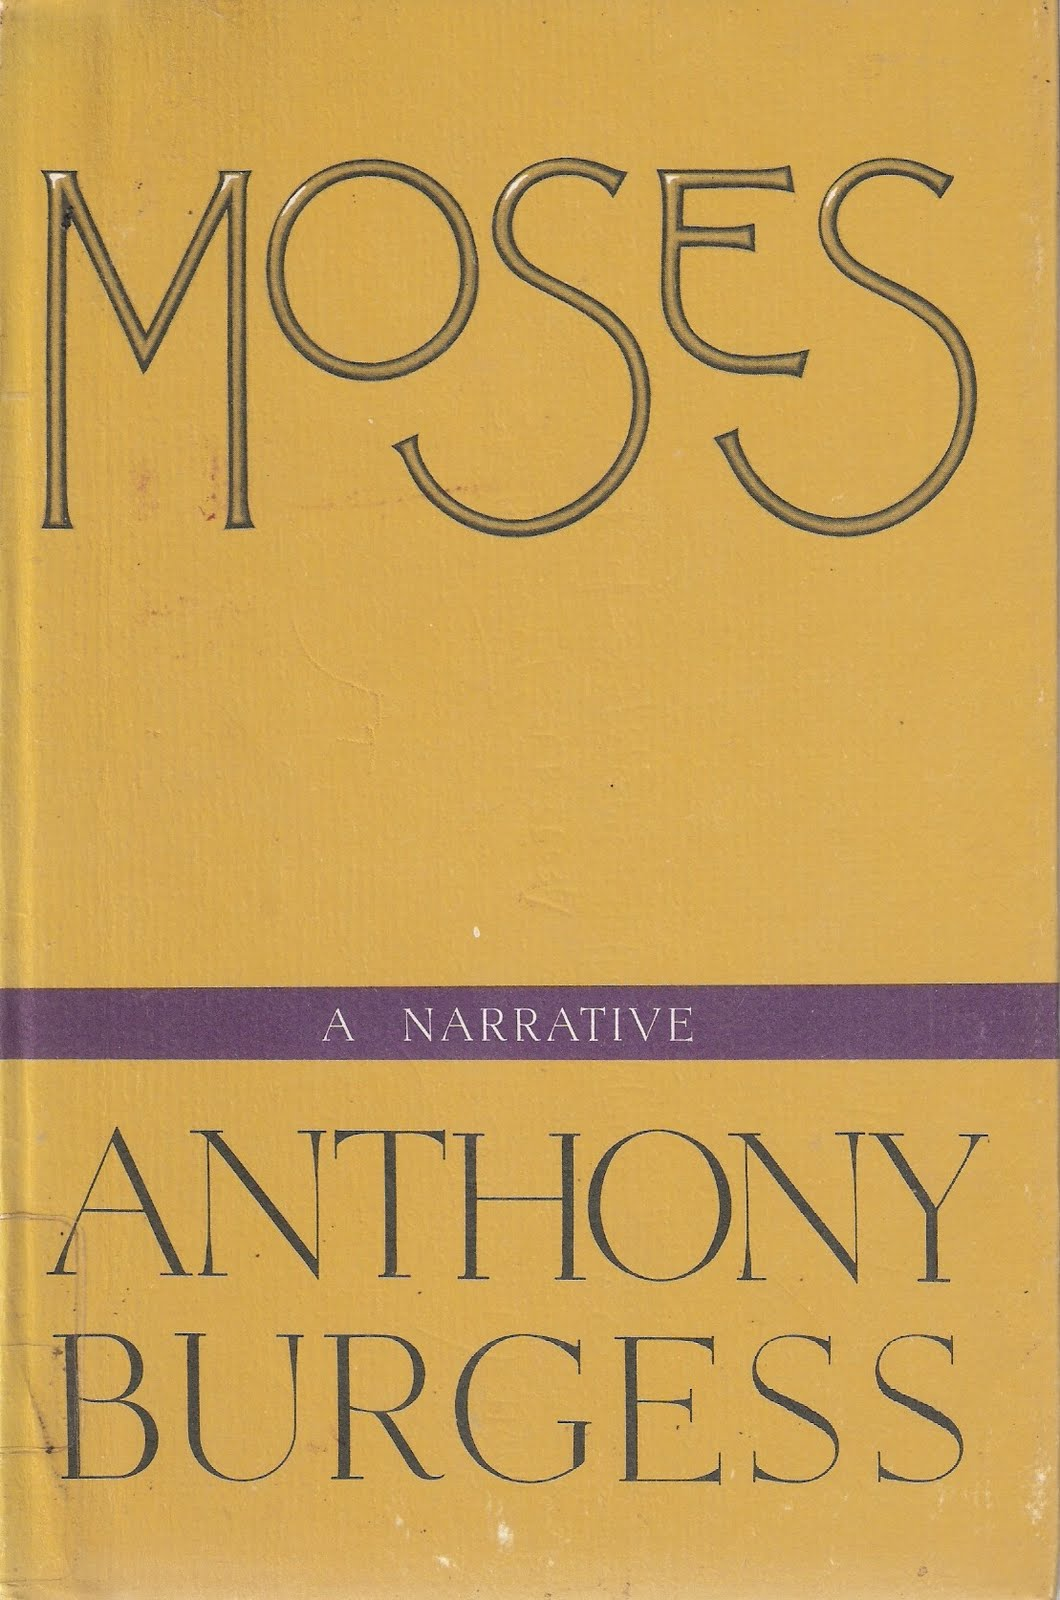 The Valve - A Literary Organ | Anthony Burgess's Moses